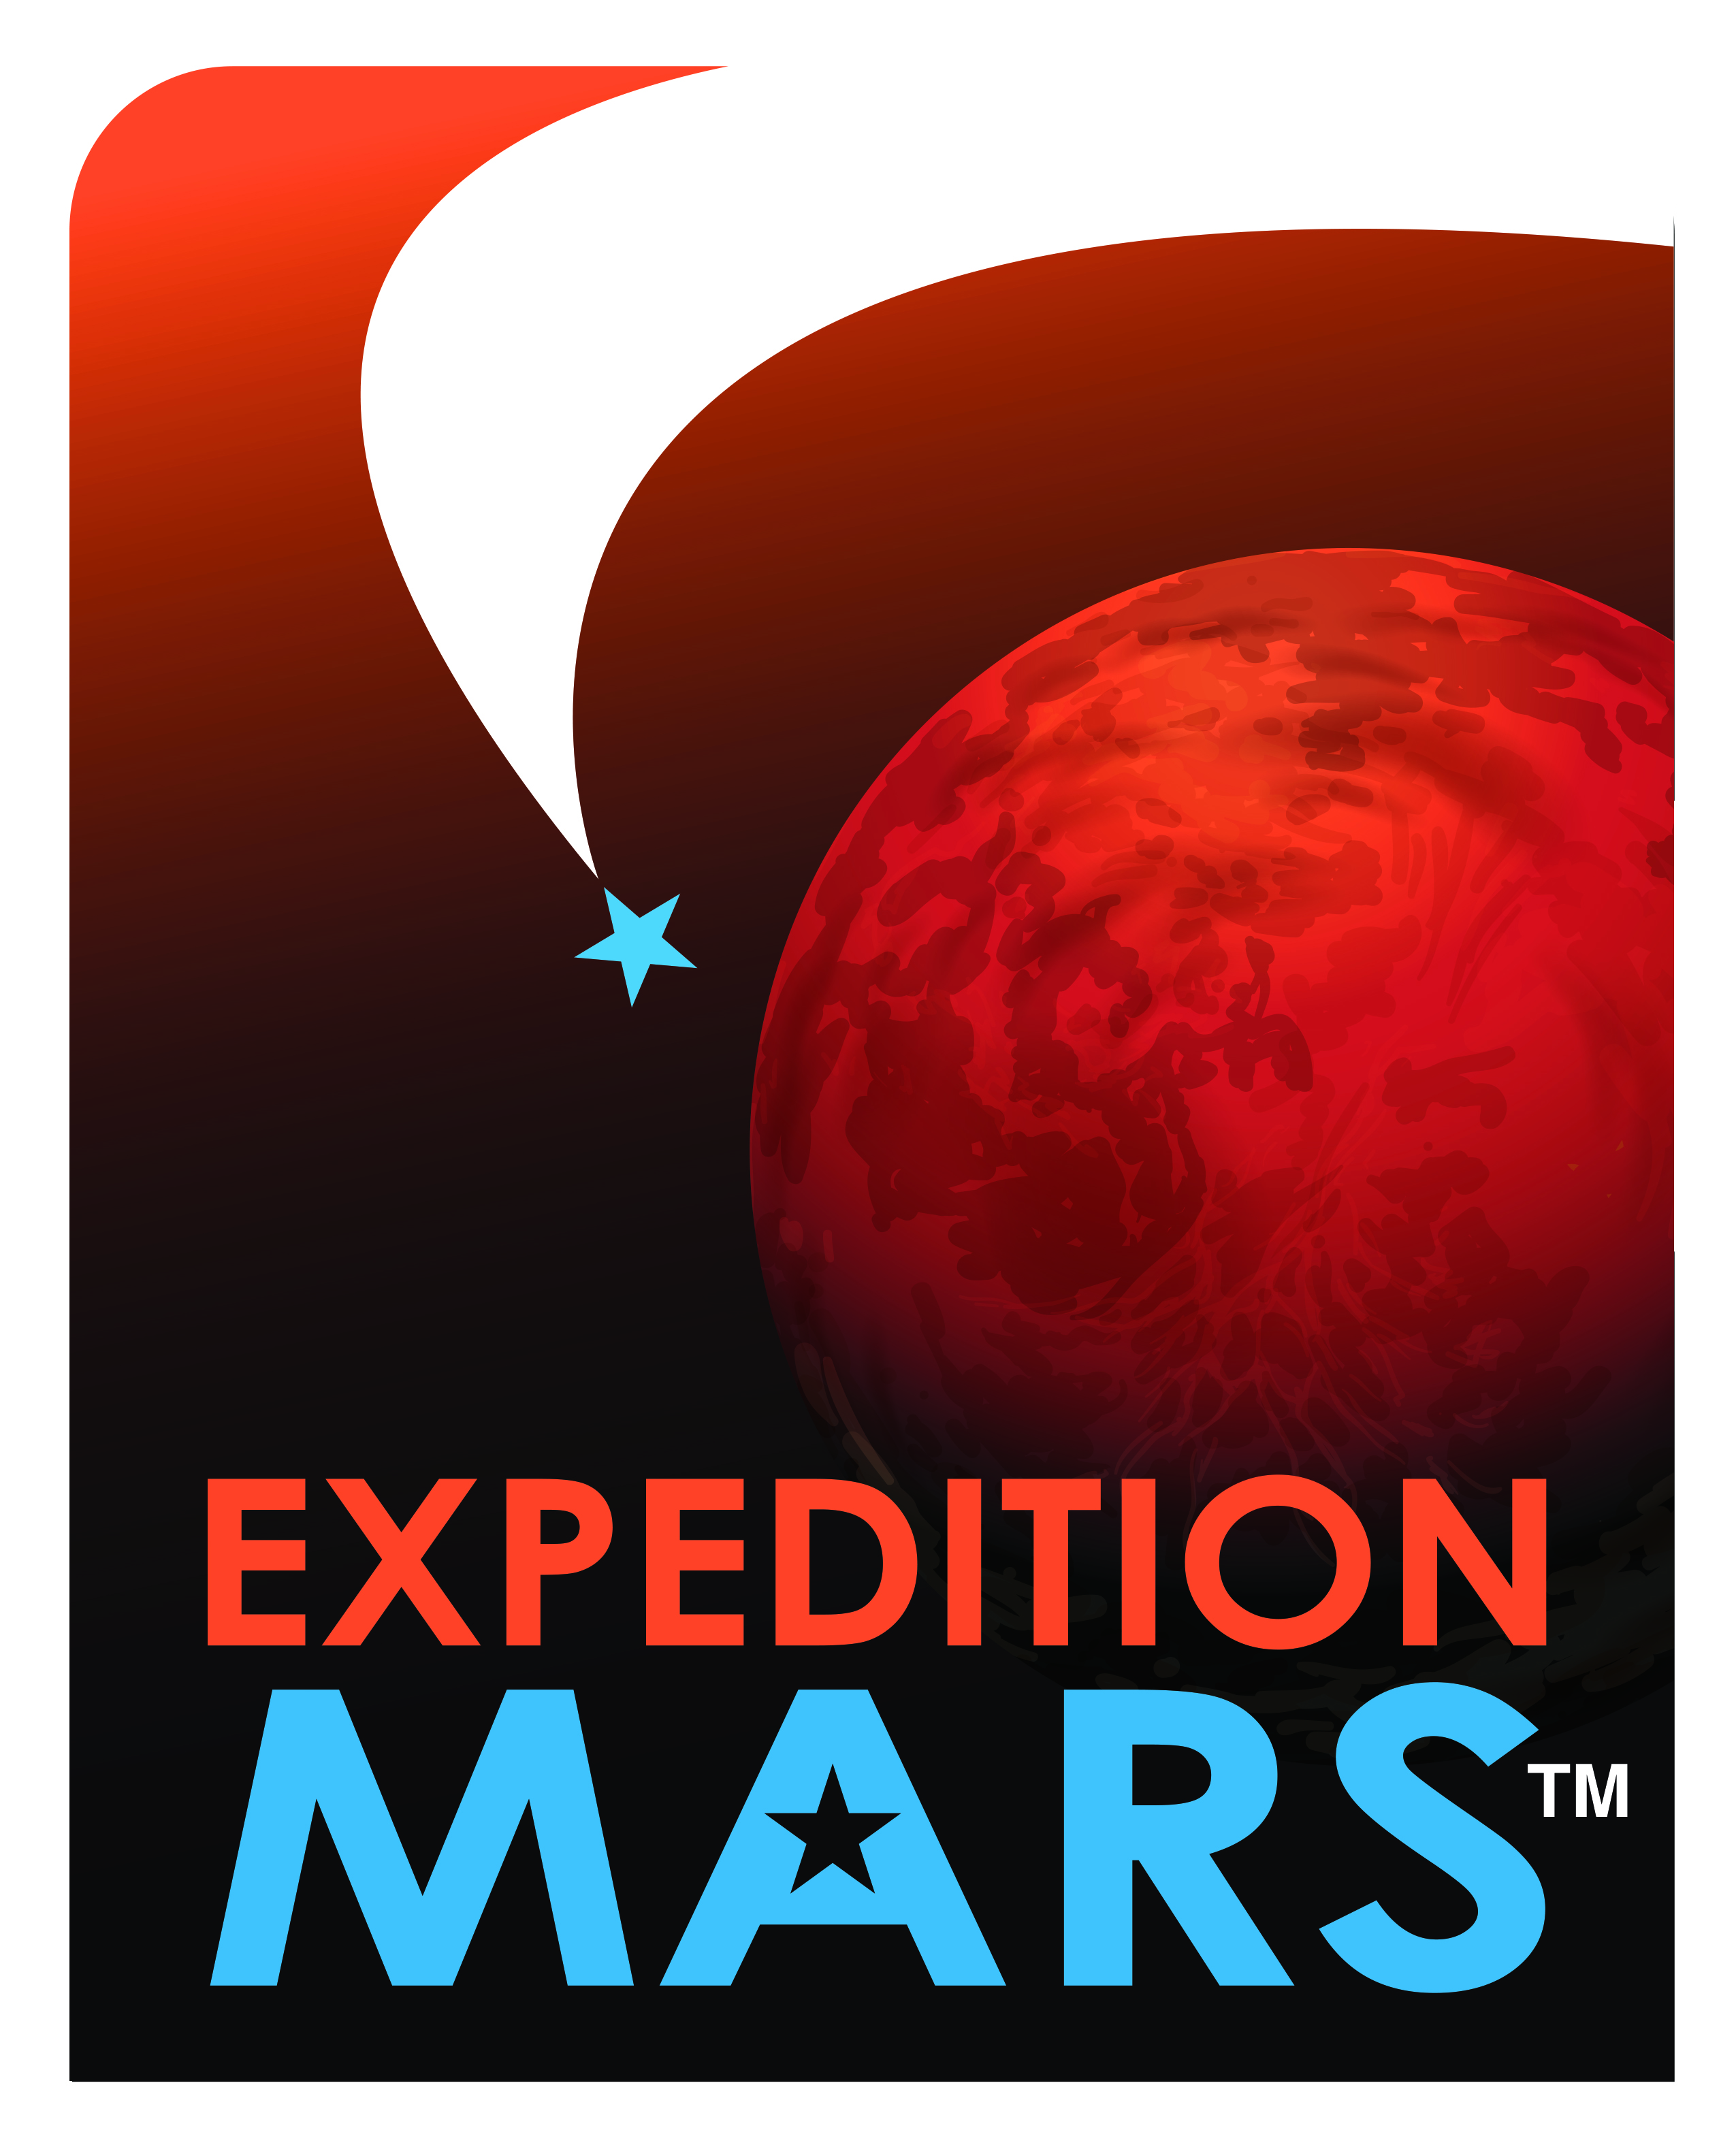 New Expedition Mars log0